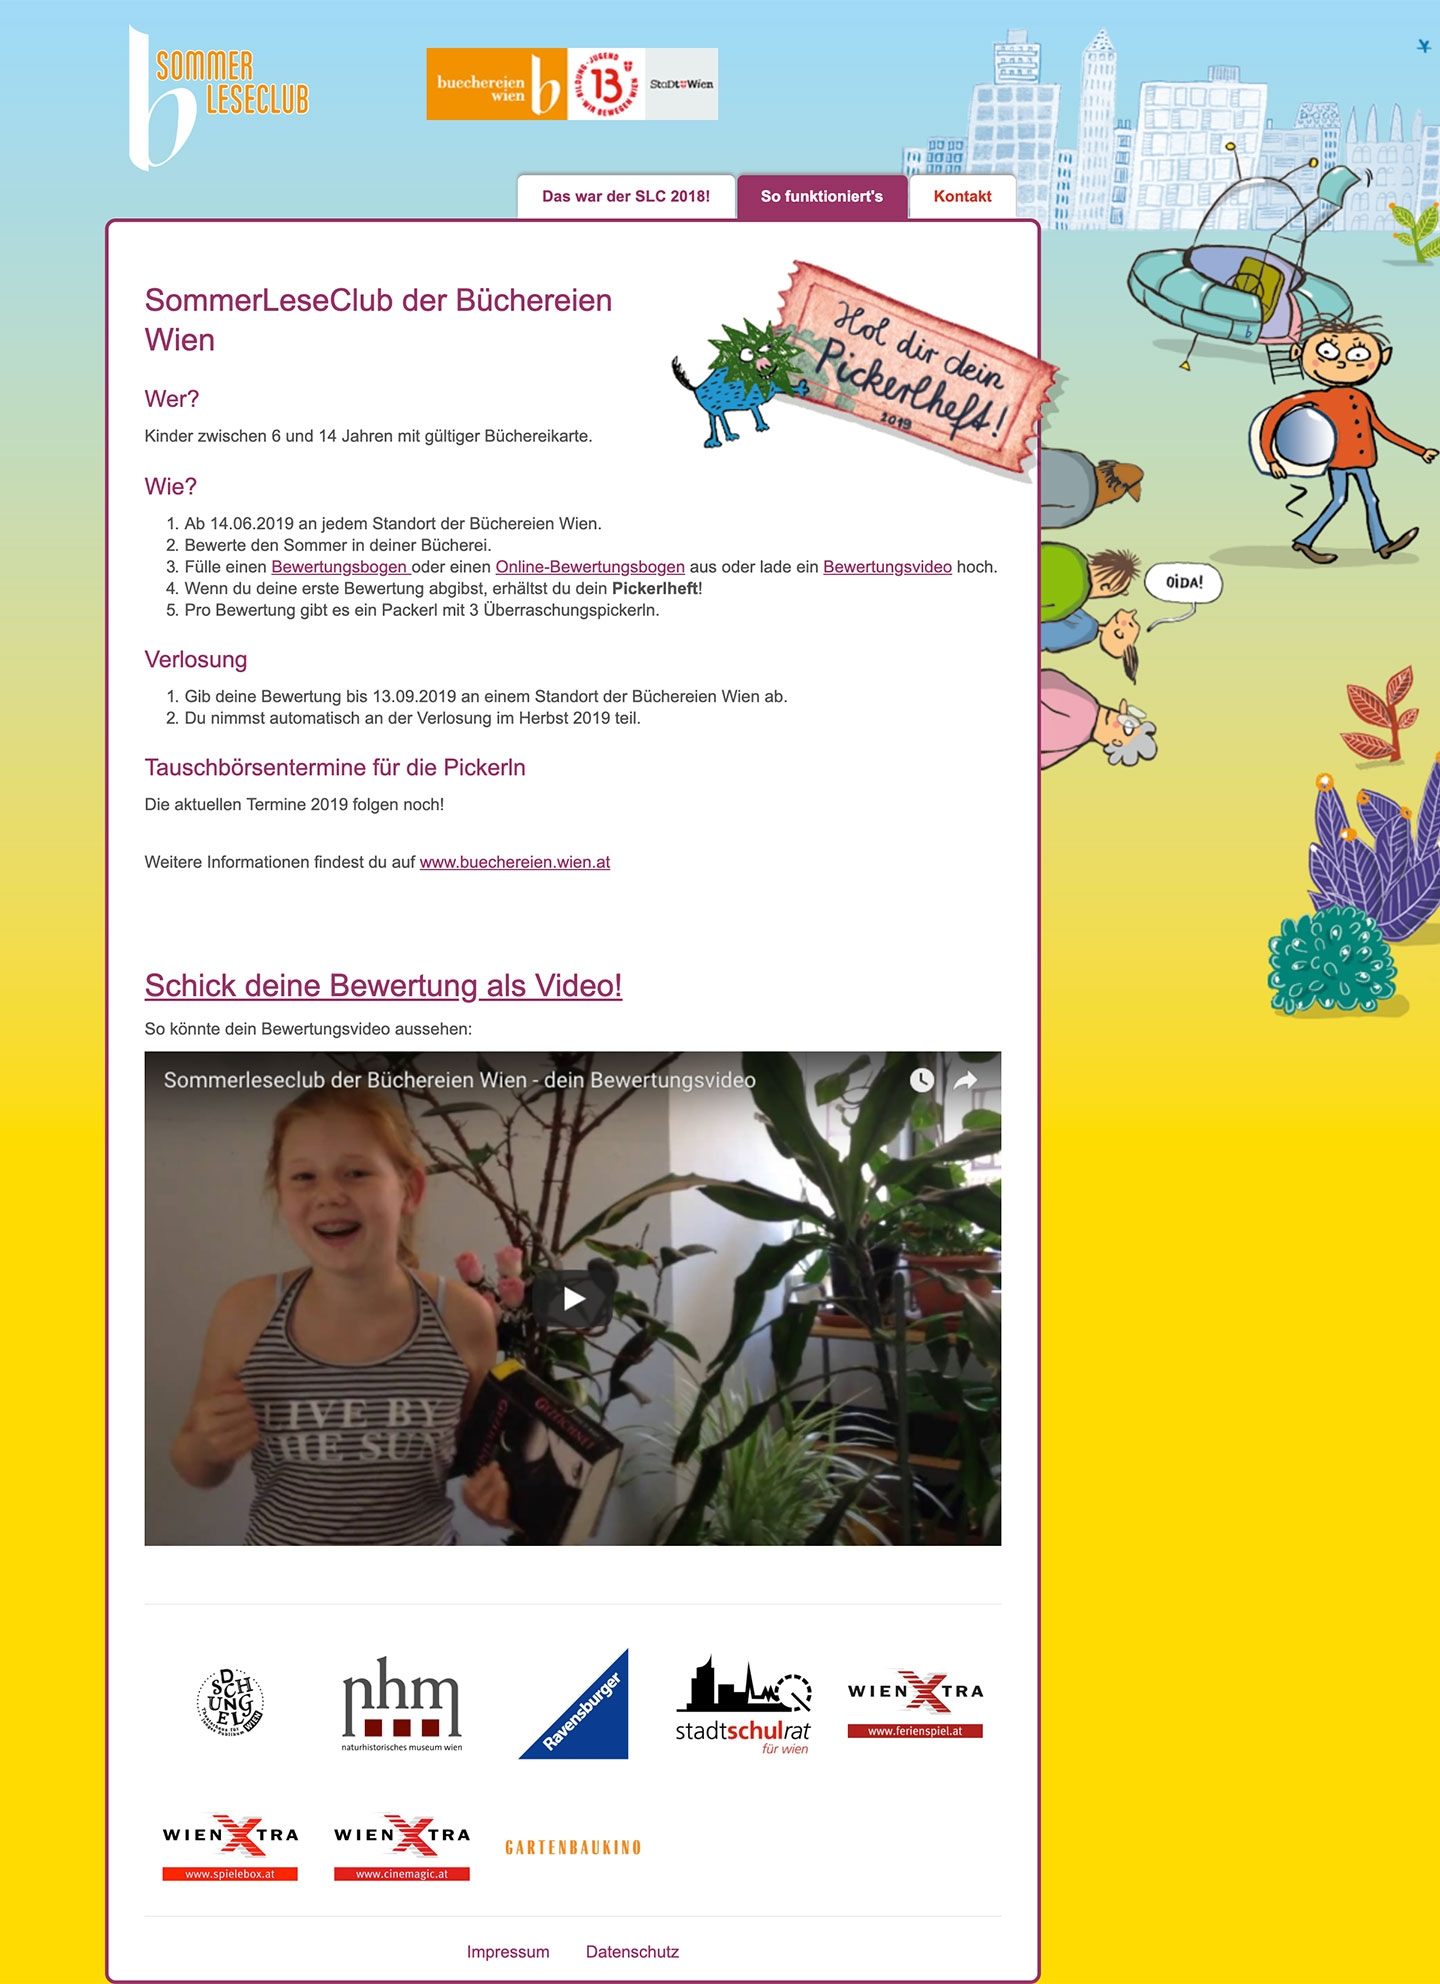 Sommer Leseclub | sommerleseclub.at | 2016 (Screen Full Scroll) © echonet communication